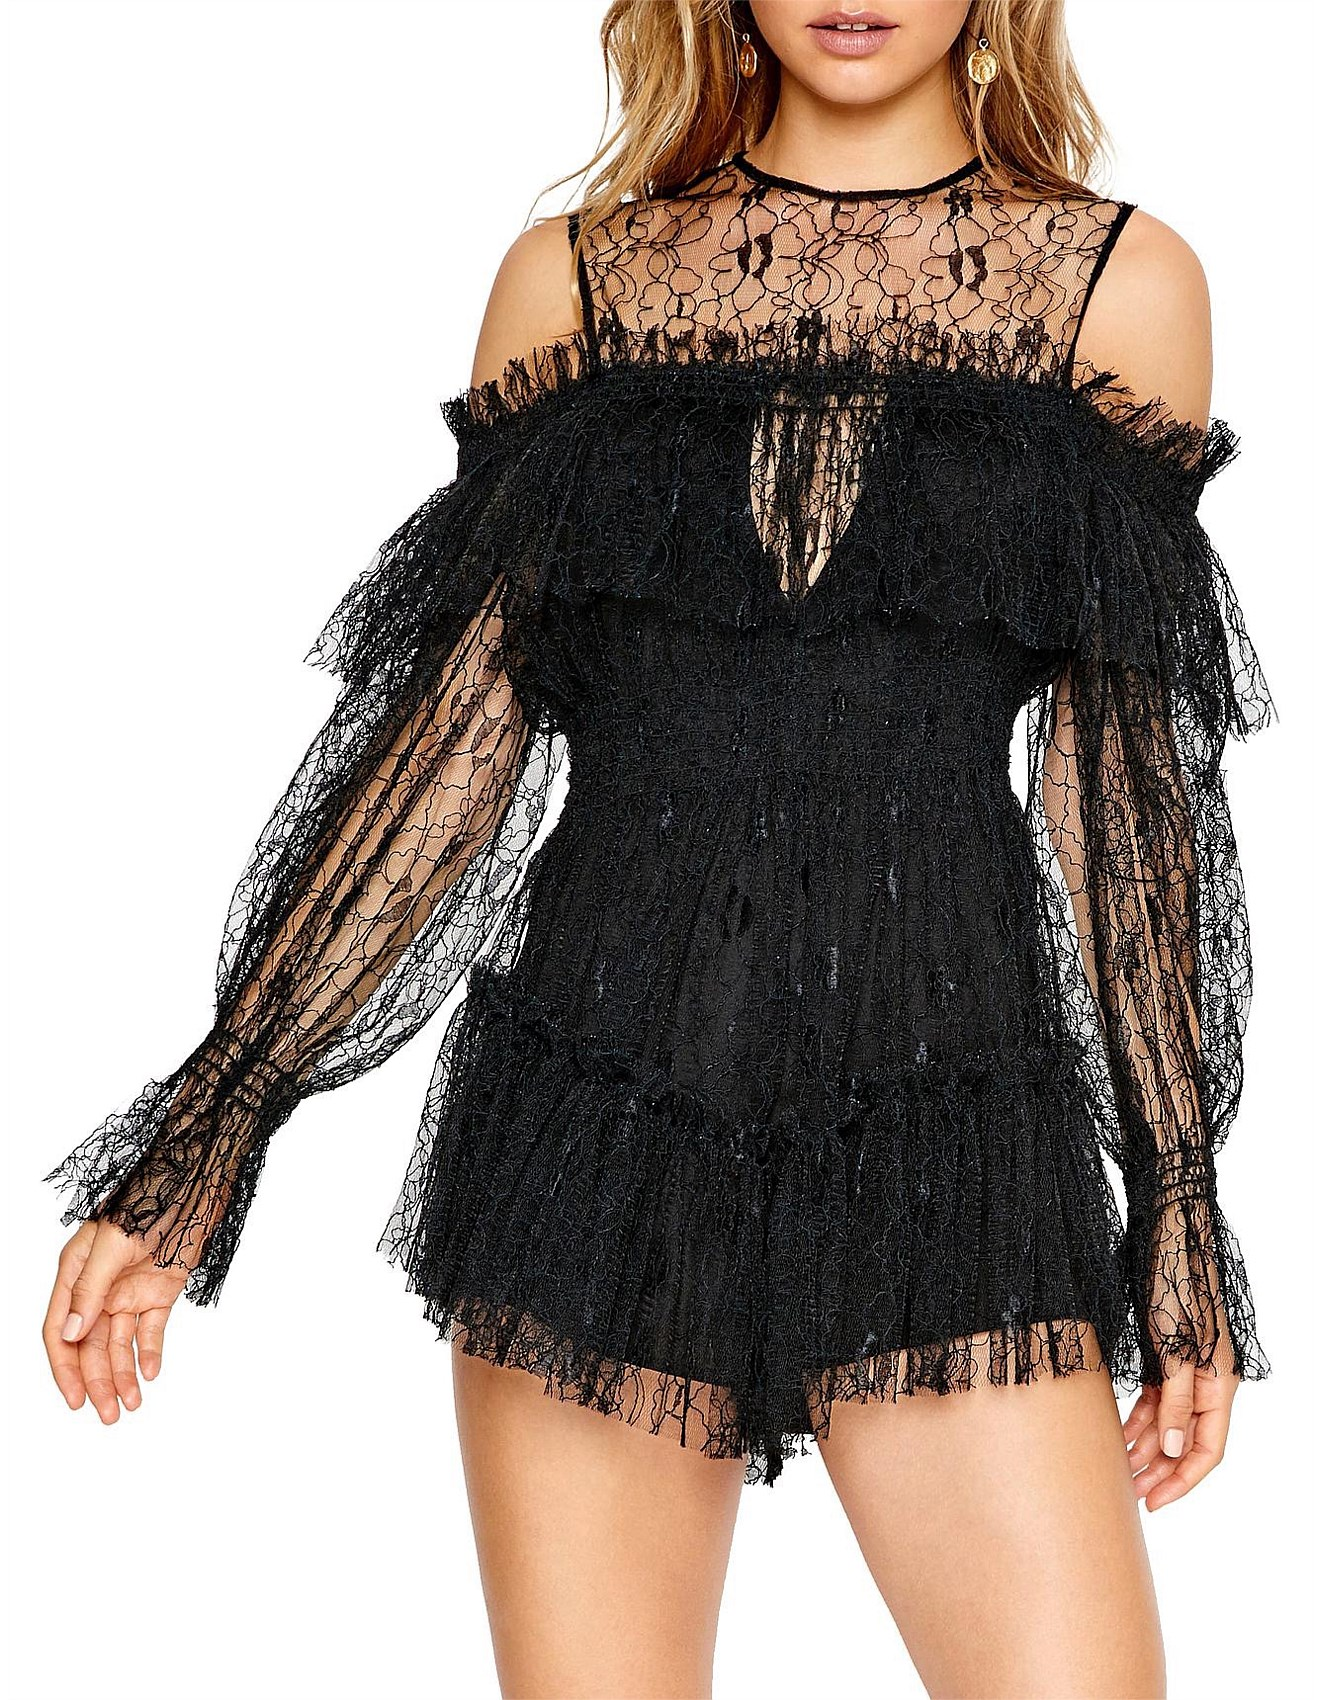 e11504ff82 One In A Million Playsuit Special Offer. 1